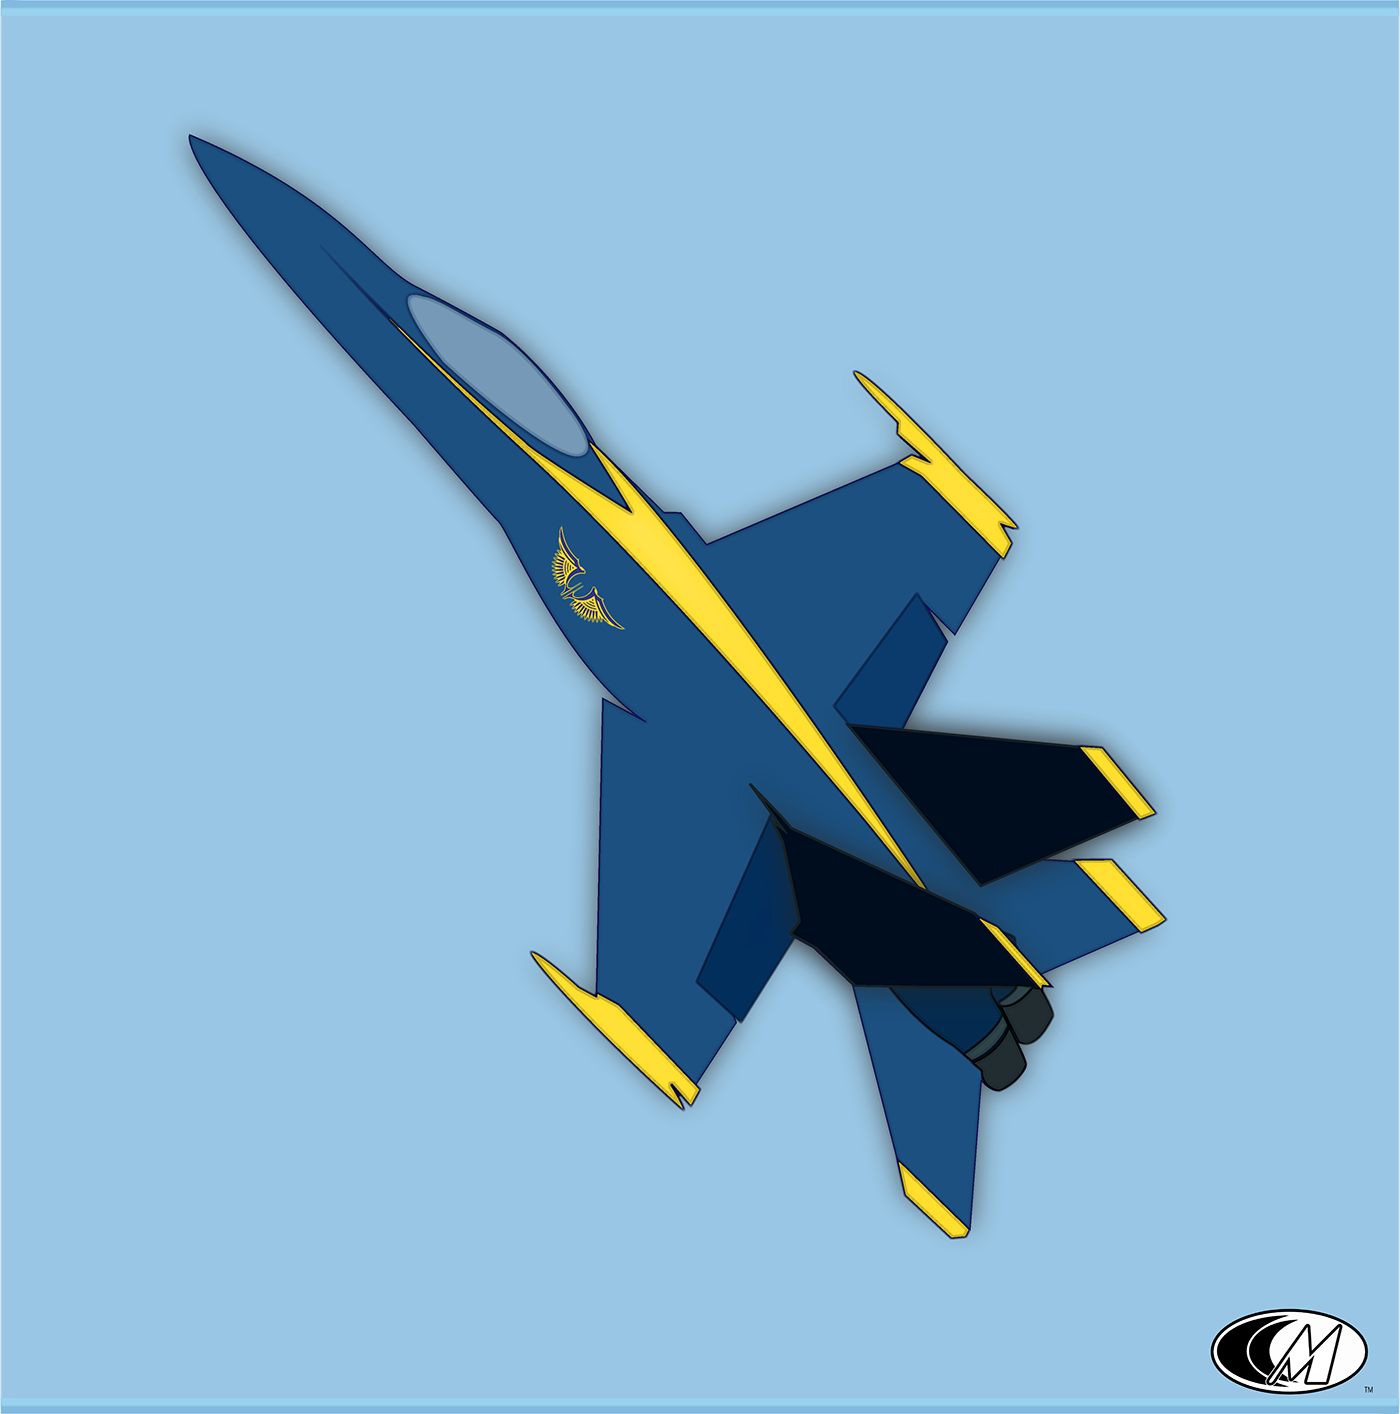 blue angels air force chicago Air and Water FA18 Hornet fighter jet Navy Pilot US Navy Jet